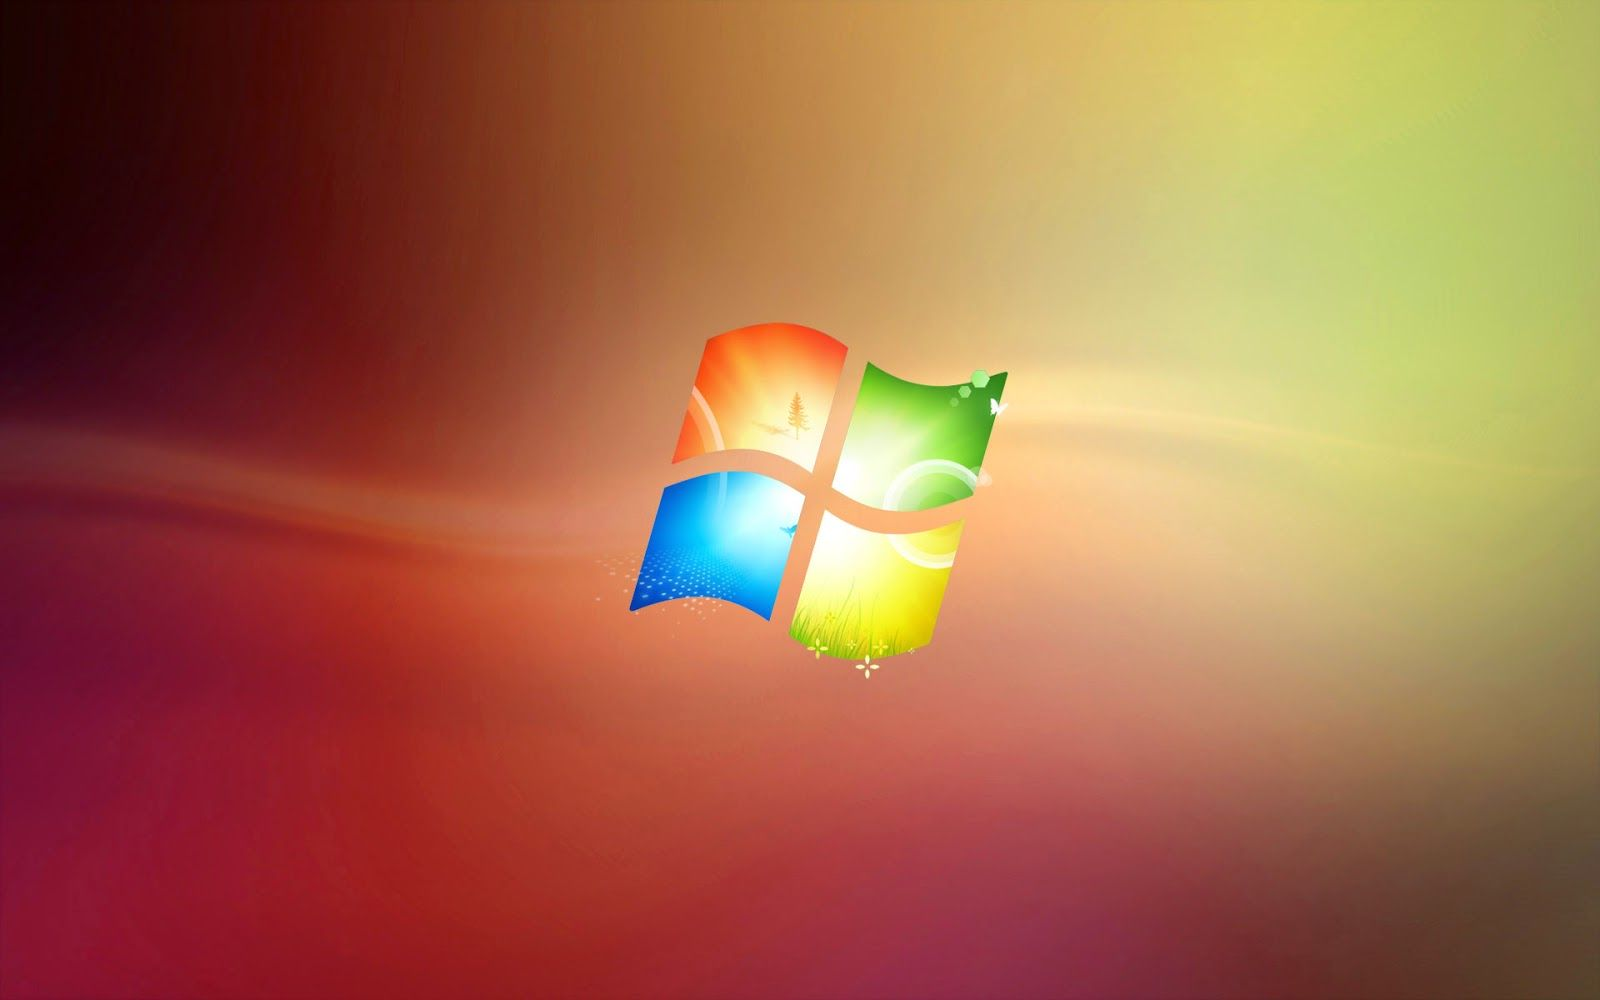 Free live wallpapers pc windows 800600 free live wallpapers for free live wallpapers pc windows 800600 free live wallpapers for windows 7 36 voltagebd Choice Image